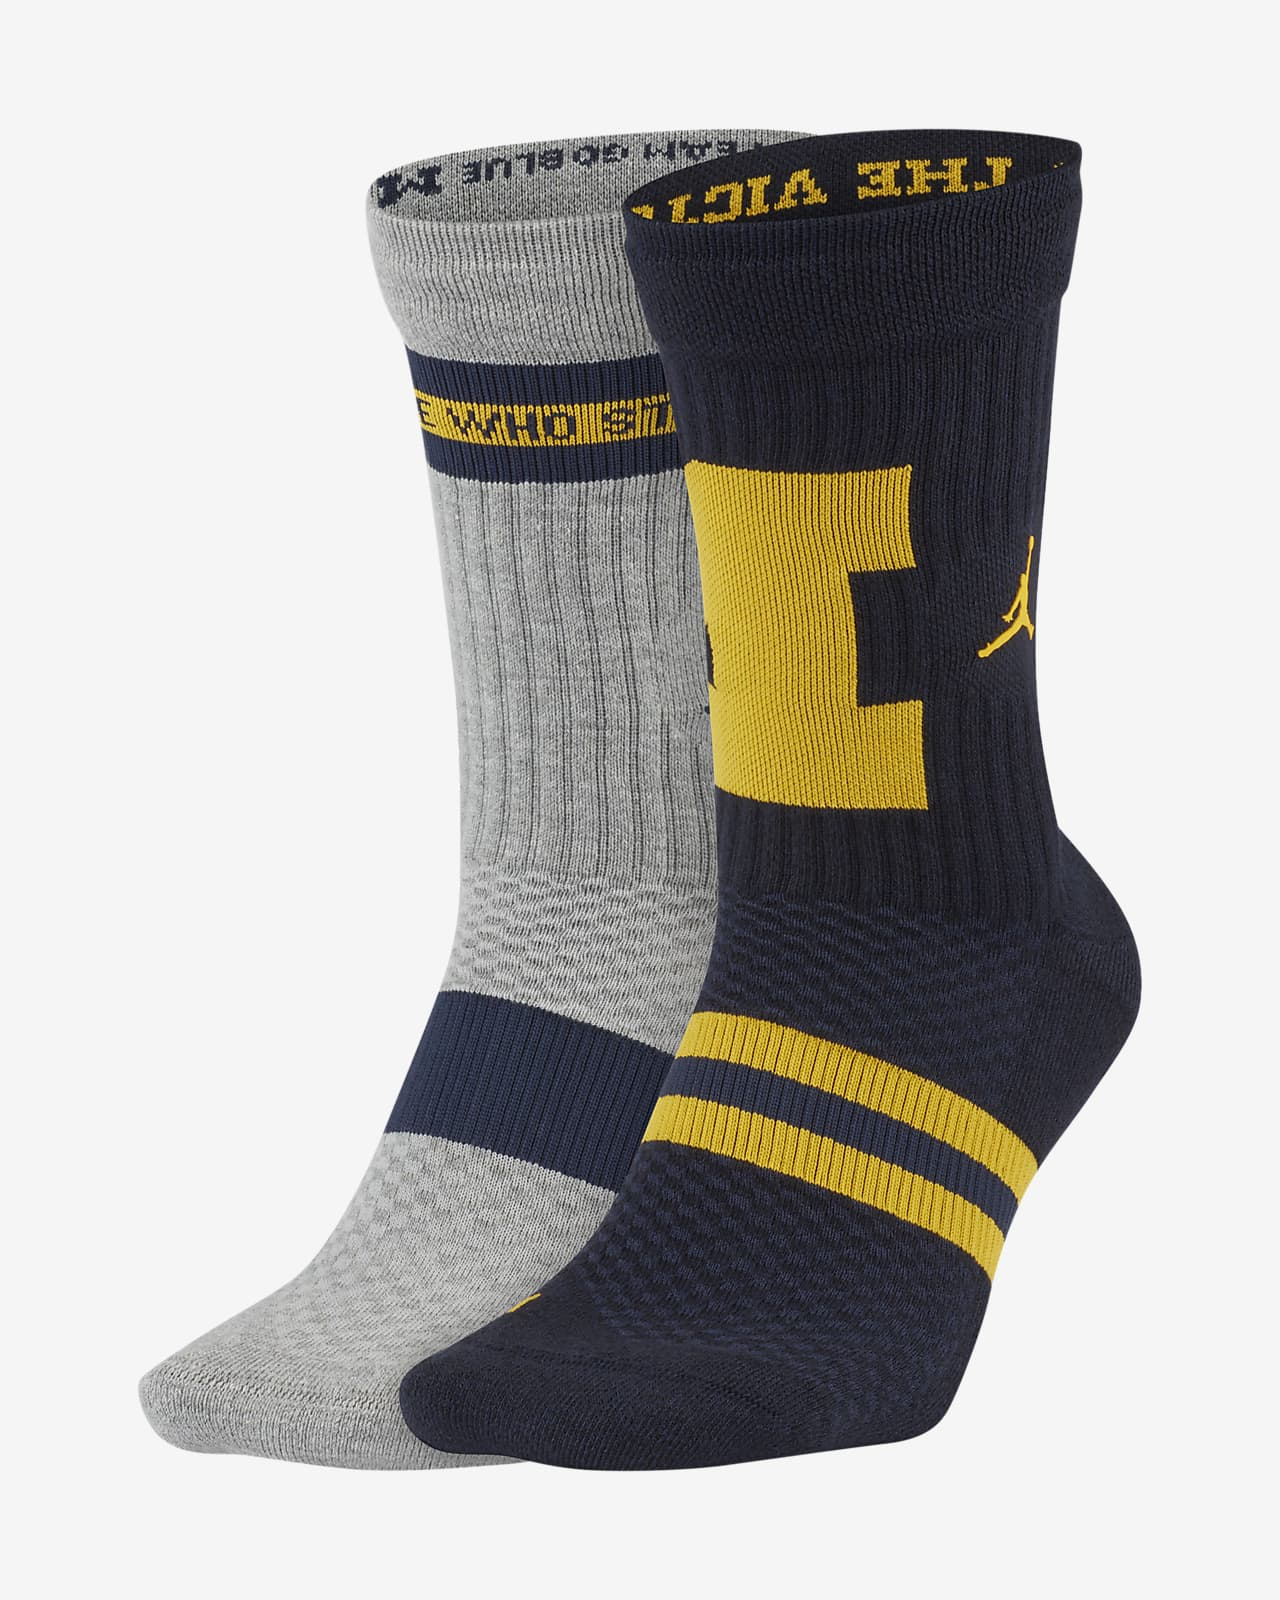 Jordan College Multiplier (Michigan) Crew Socks (2 pairs)